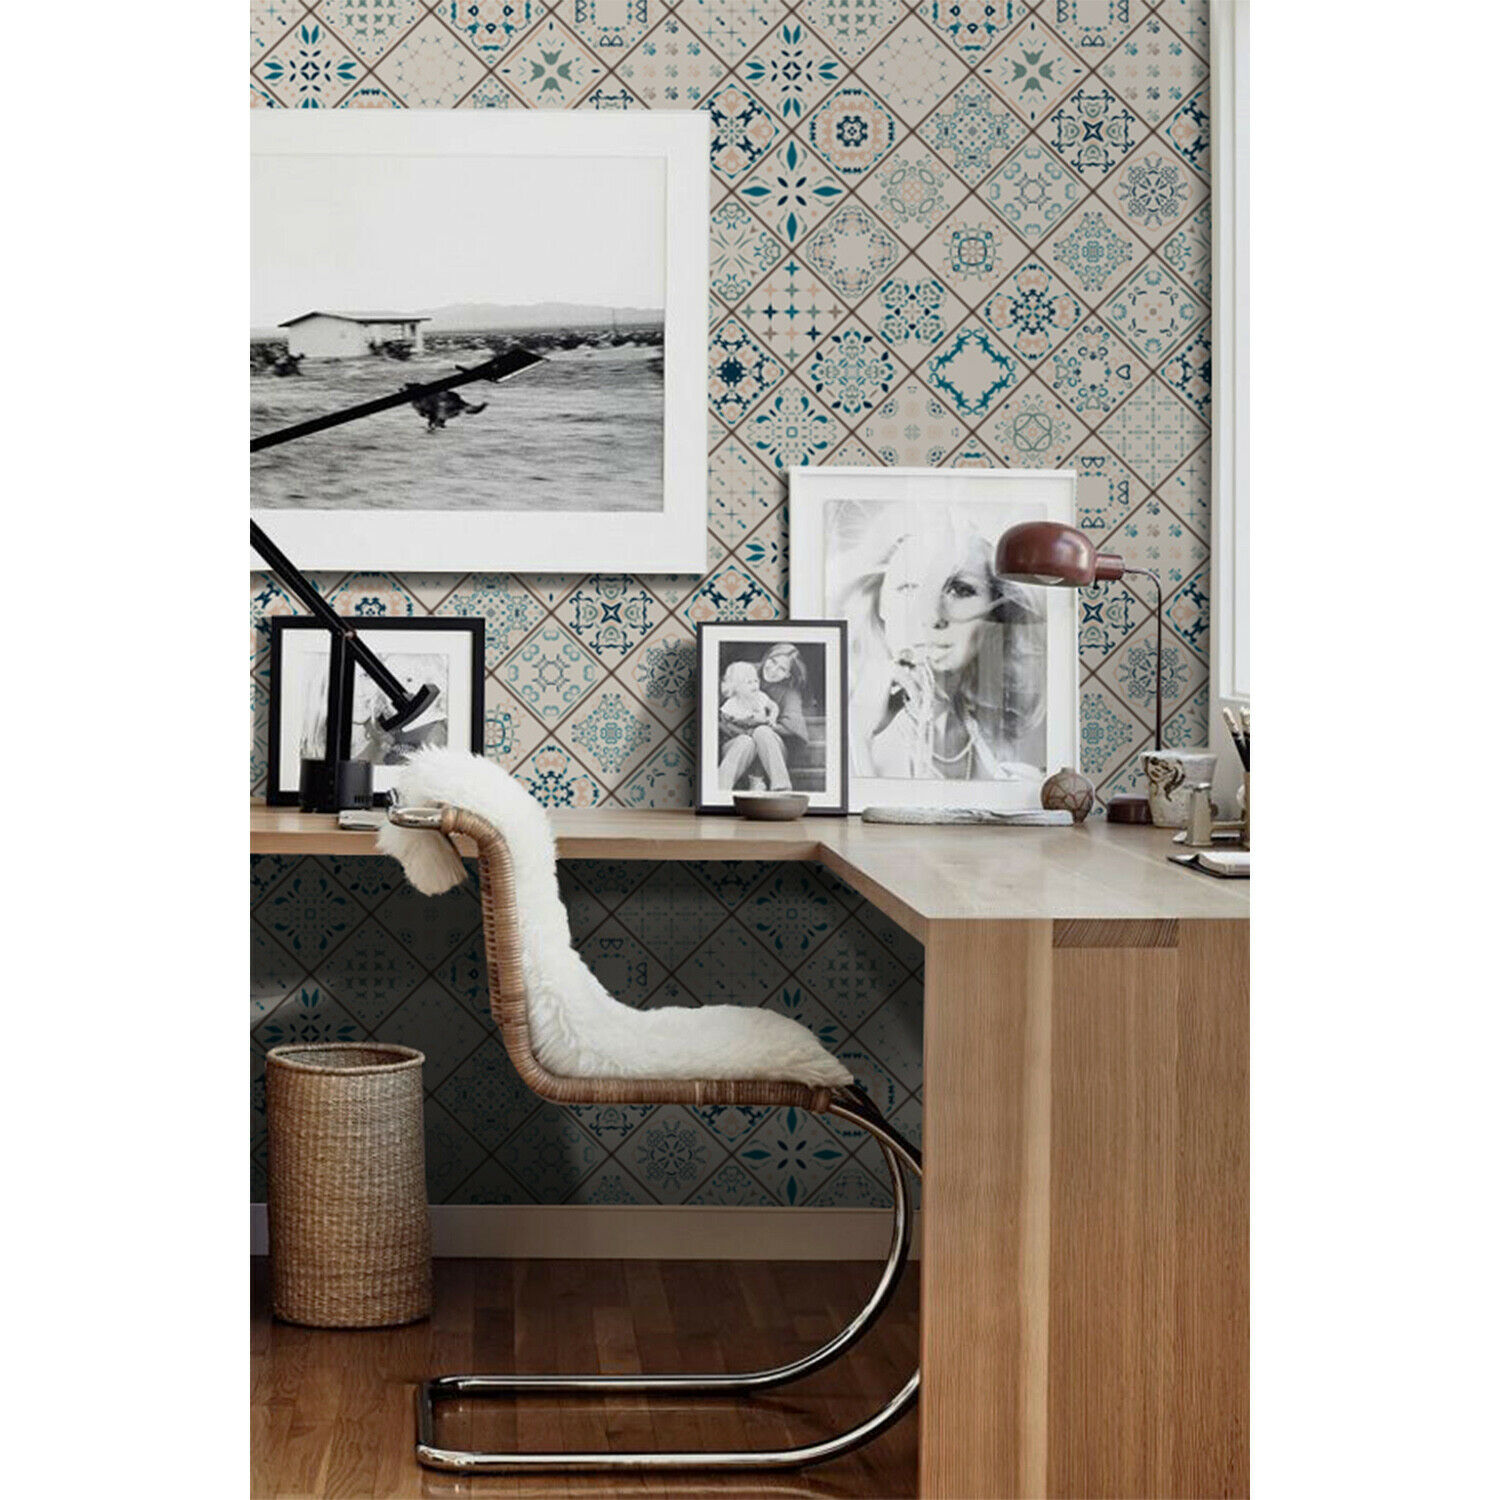 Tiles composition Non-Woven wallpaper Geometric Pattern Traditional Home Mural